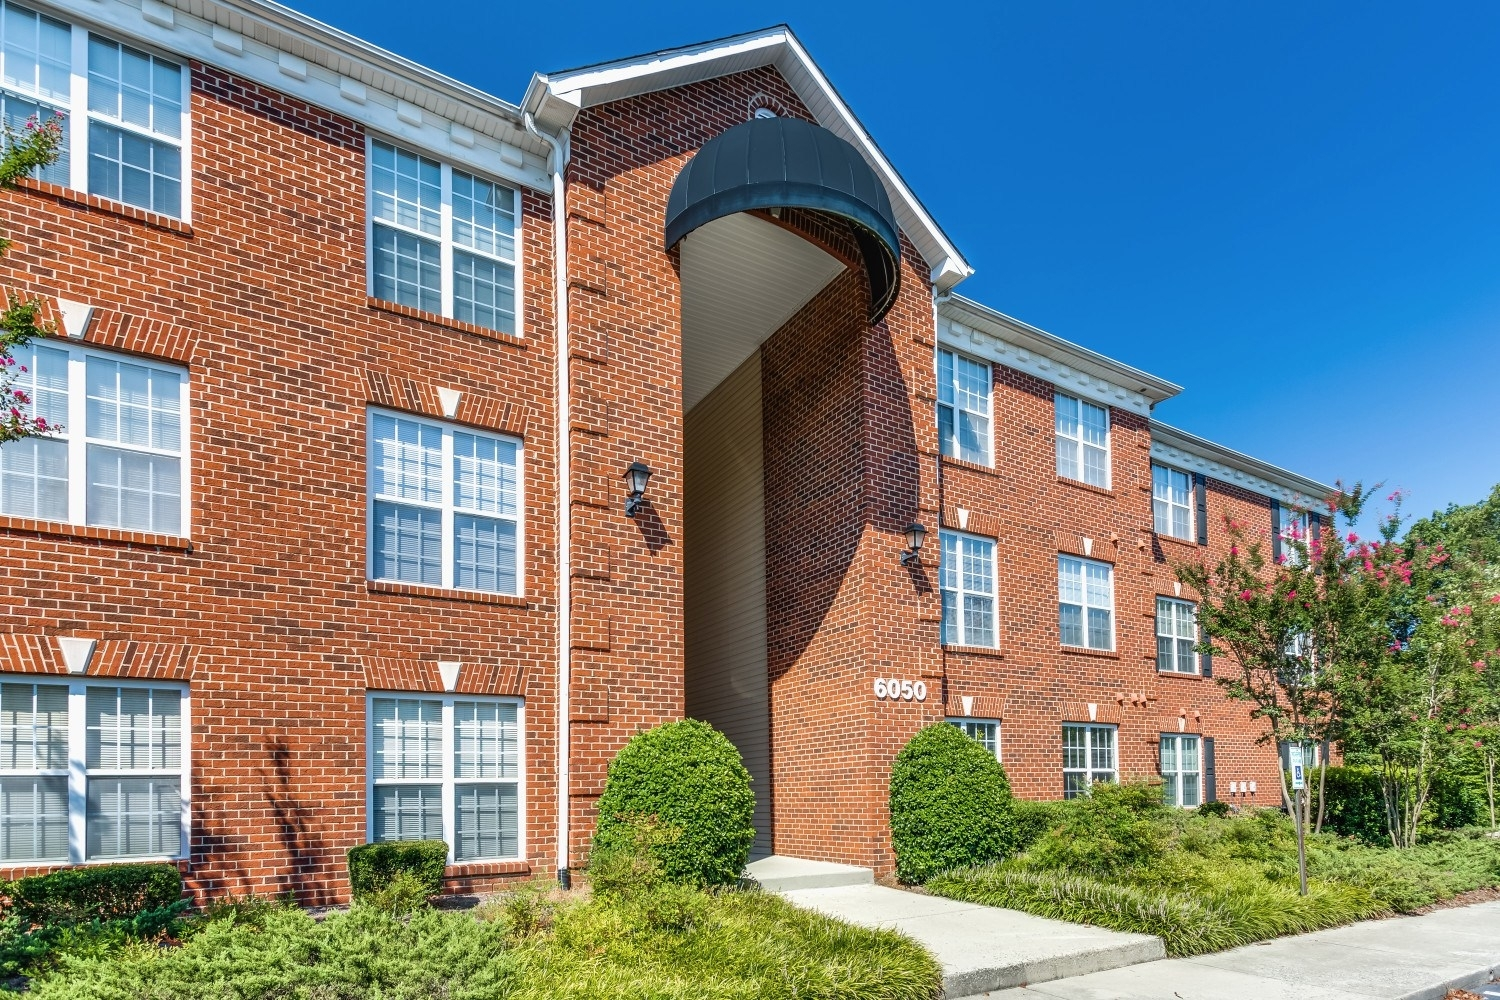 Photos Of Laurel Springs In High Point, Nc within Laurel Gardens Apartments